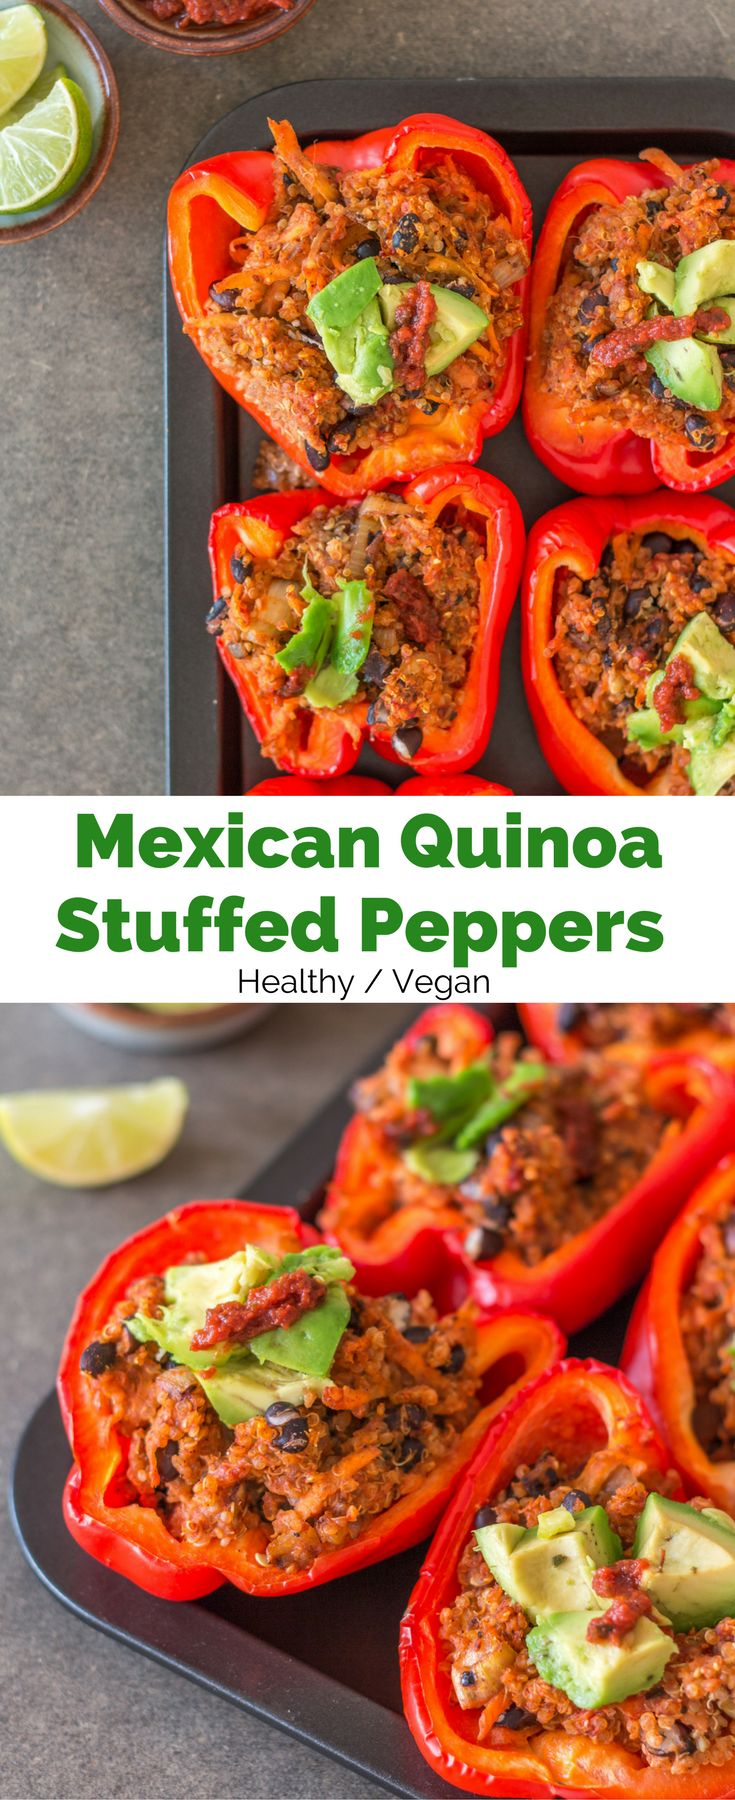 These Mexican Quinoa Stuffed Peppers make for an easy, healthy, filling, and flavourful dinner. Stuffed with quinoa, black beans, tomato, and spices! Vegan + gluten-free.